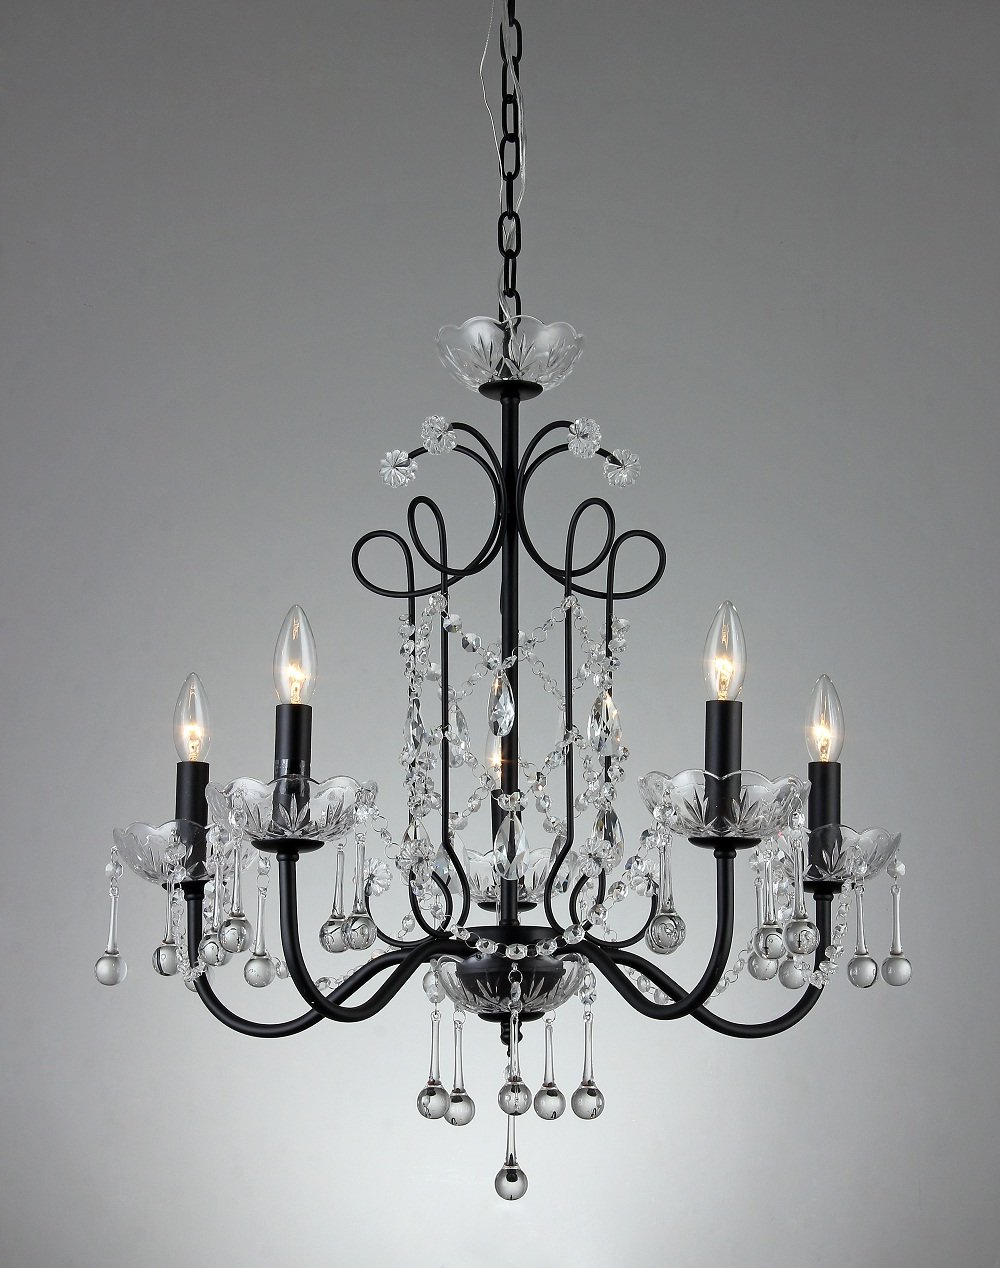 Newest Bunceton 5 Light Candle Style Chandelier Regarding Shaylee 5 Light Candle Style Chandeliers (Gallery 13 of 20)